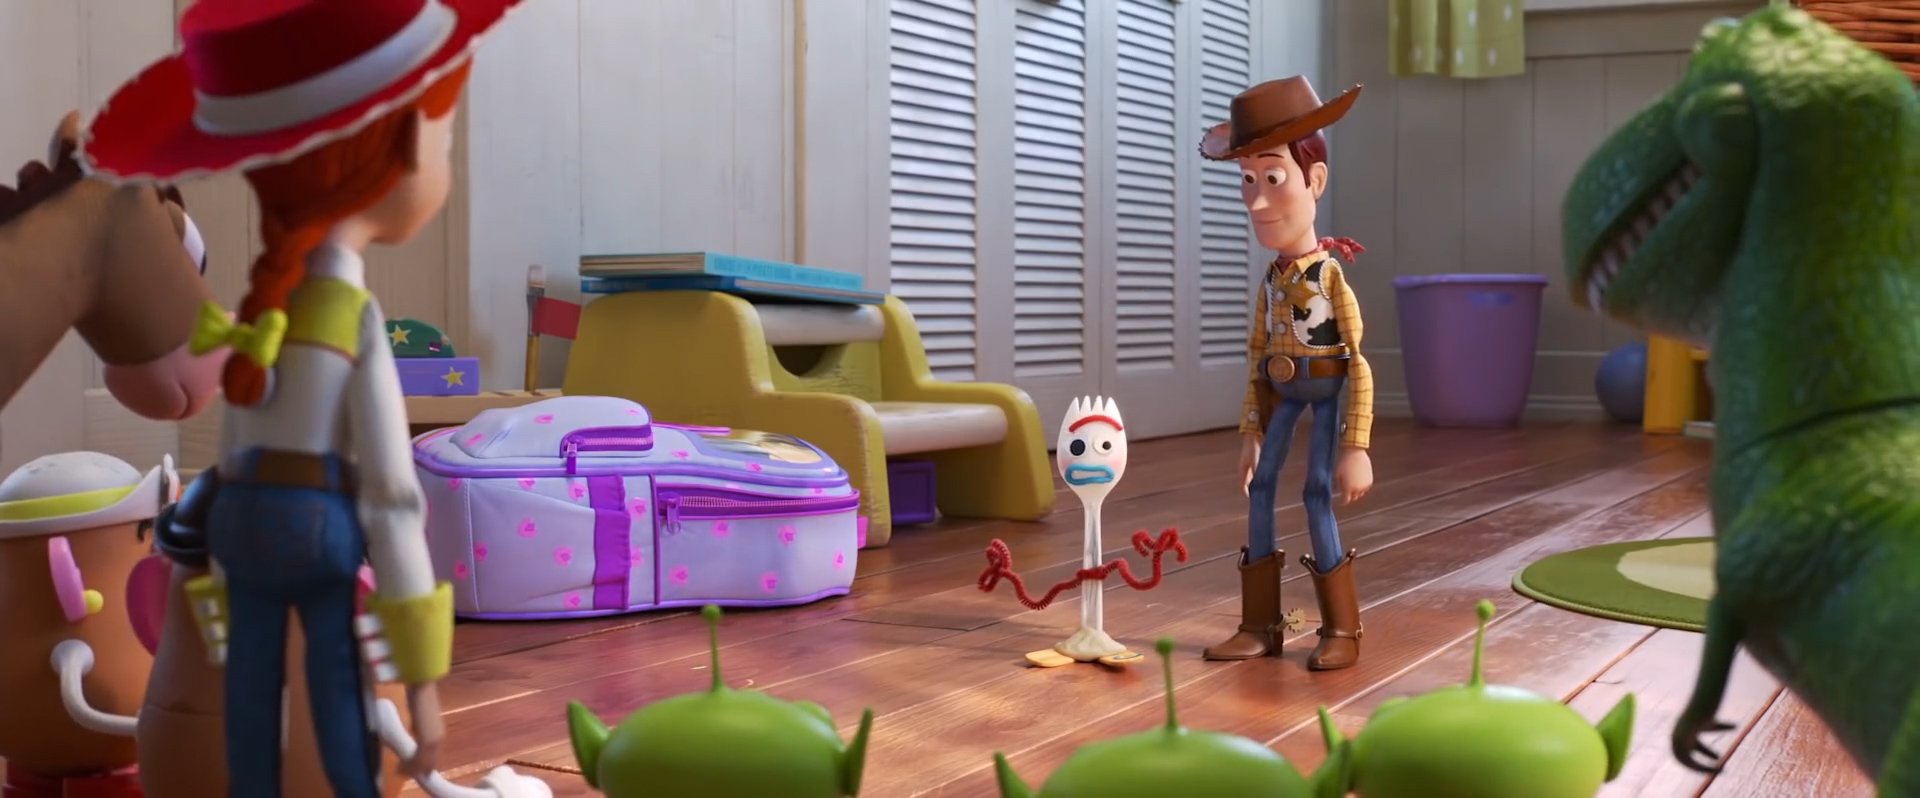 Toy Story 4 - Making a New Friend